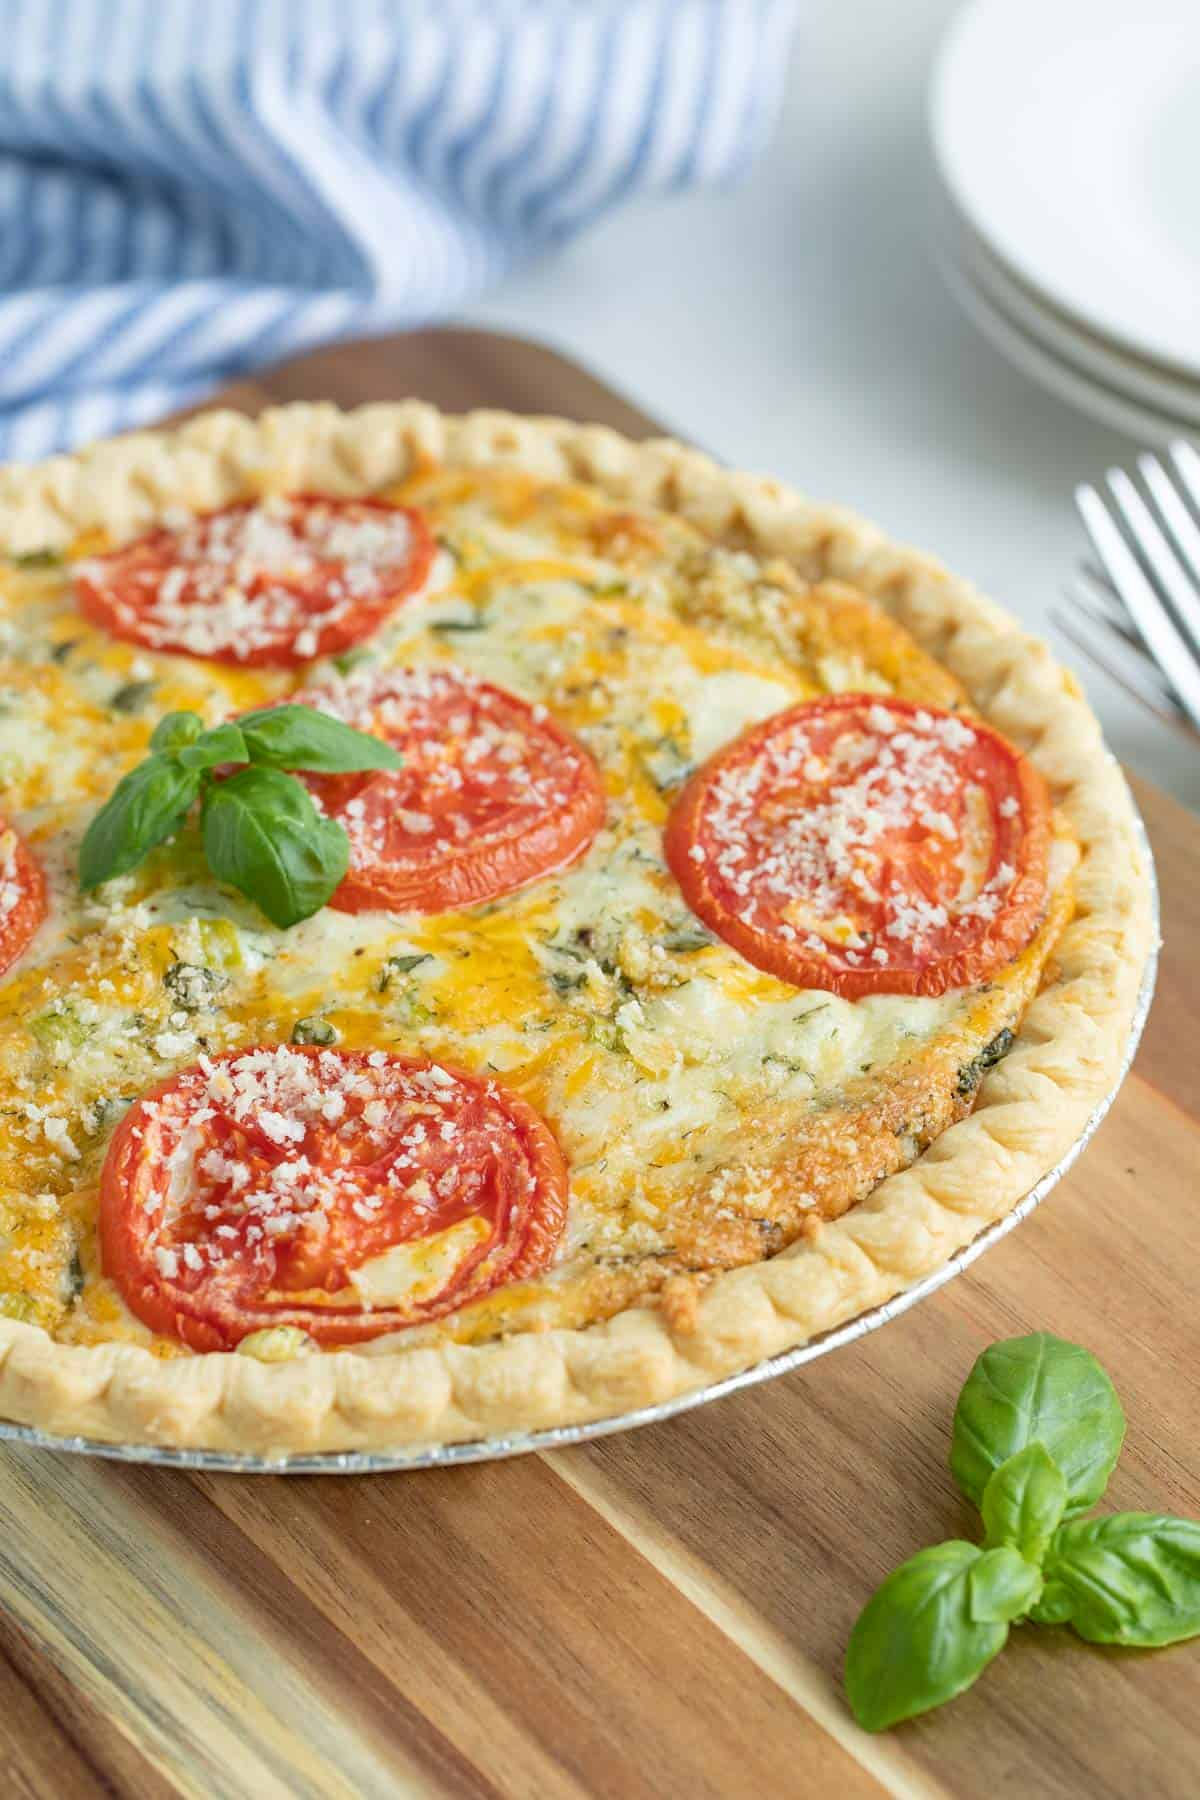 Front closeup view of a tomato pie topped with a sprig of fresh basil.